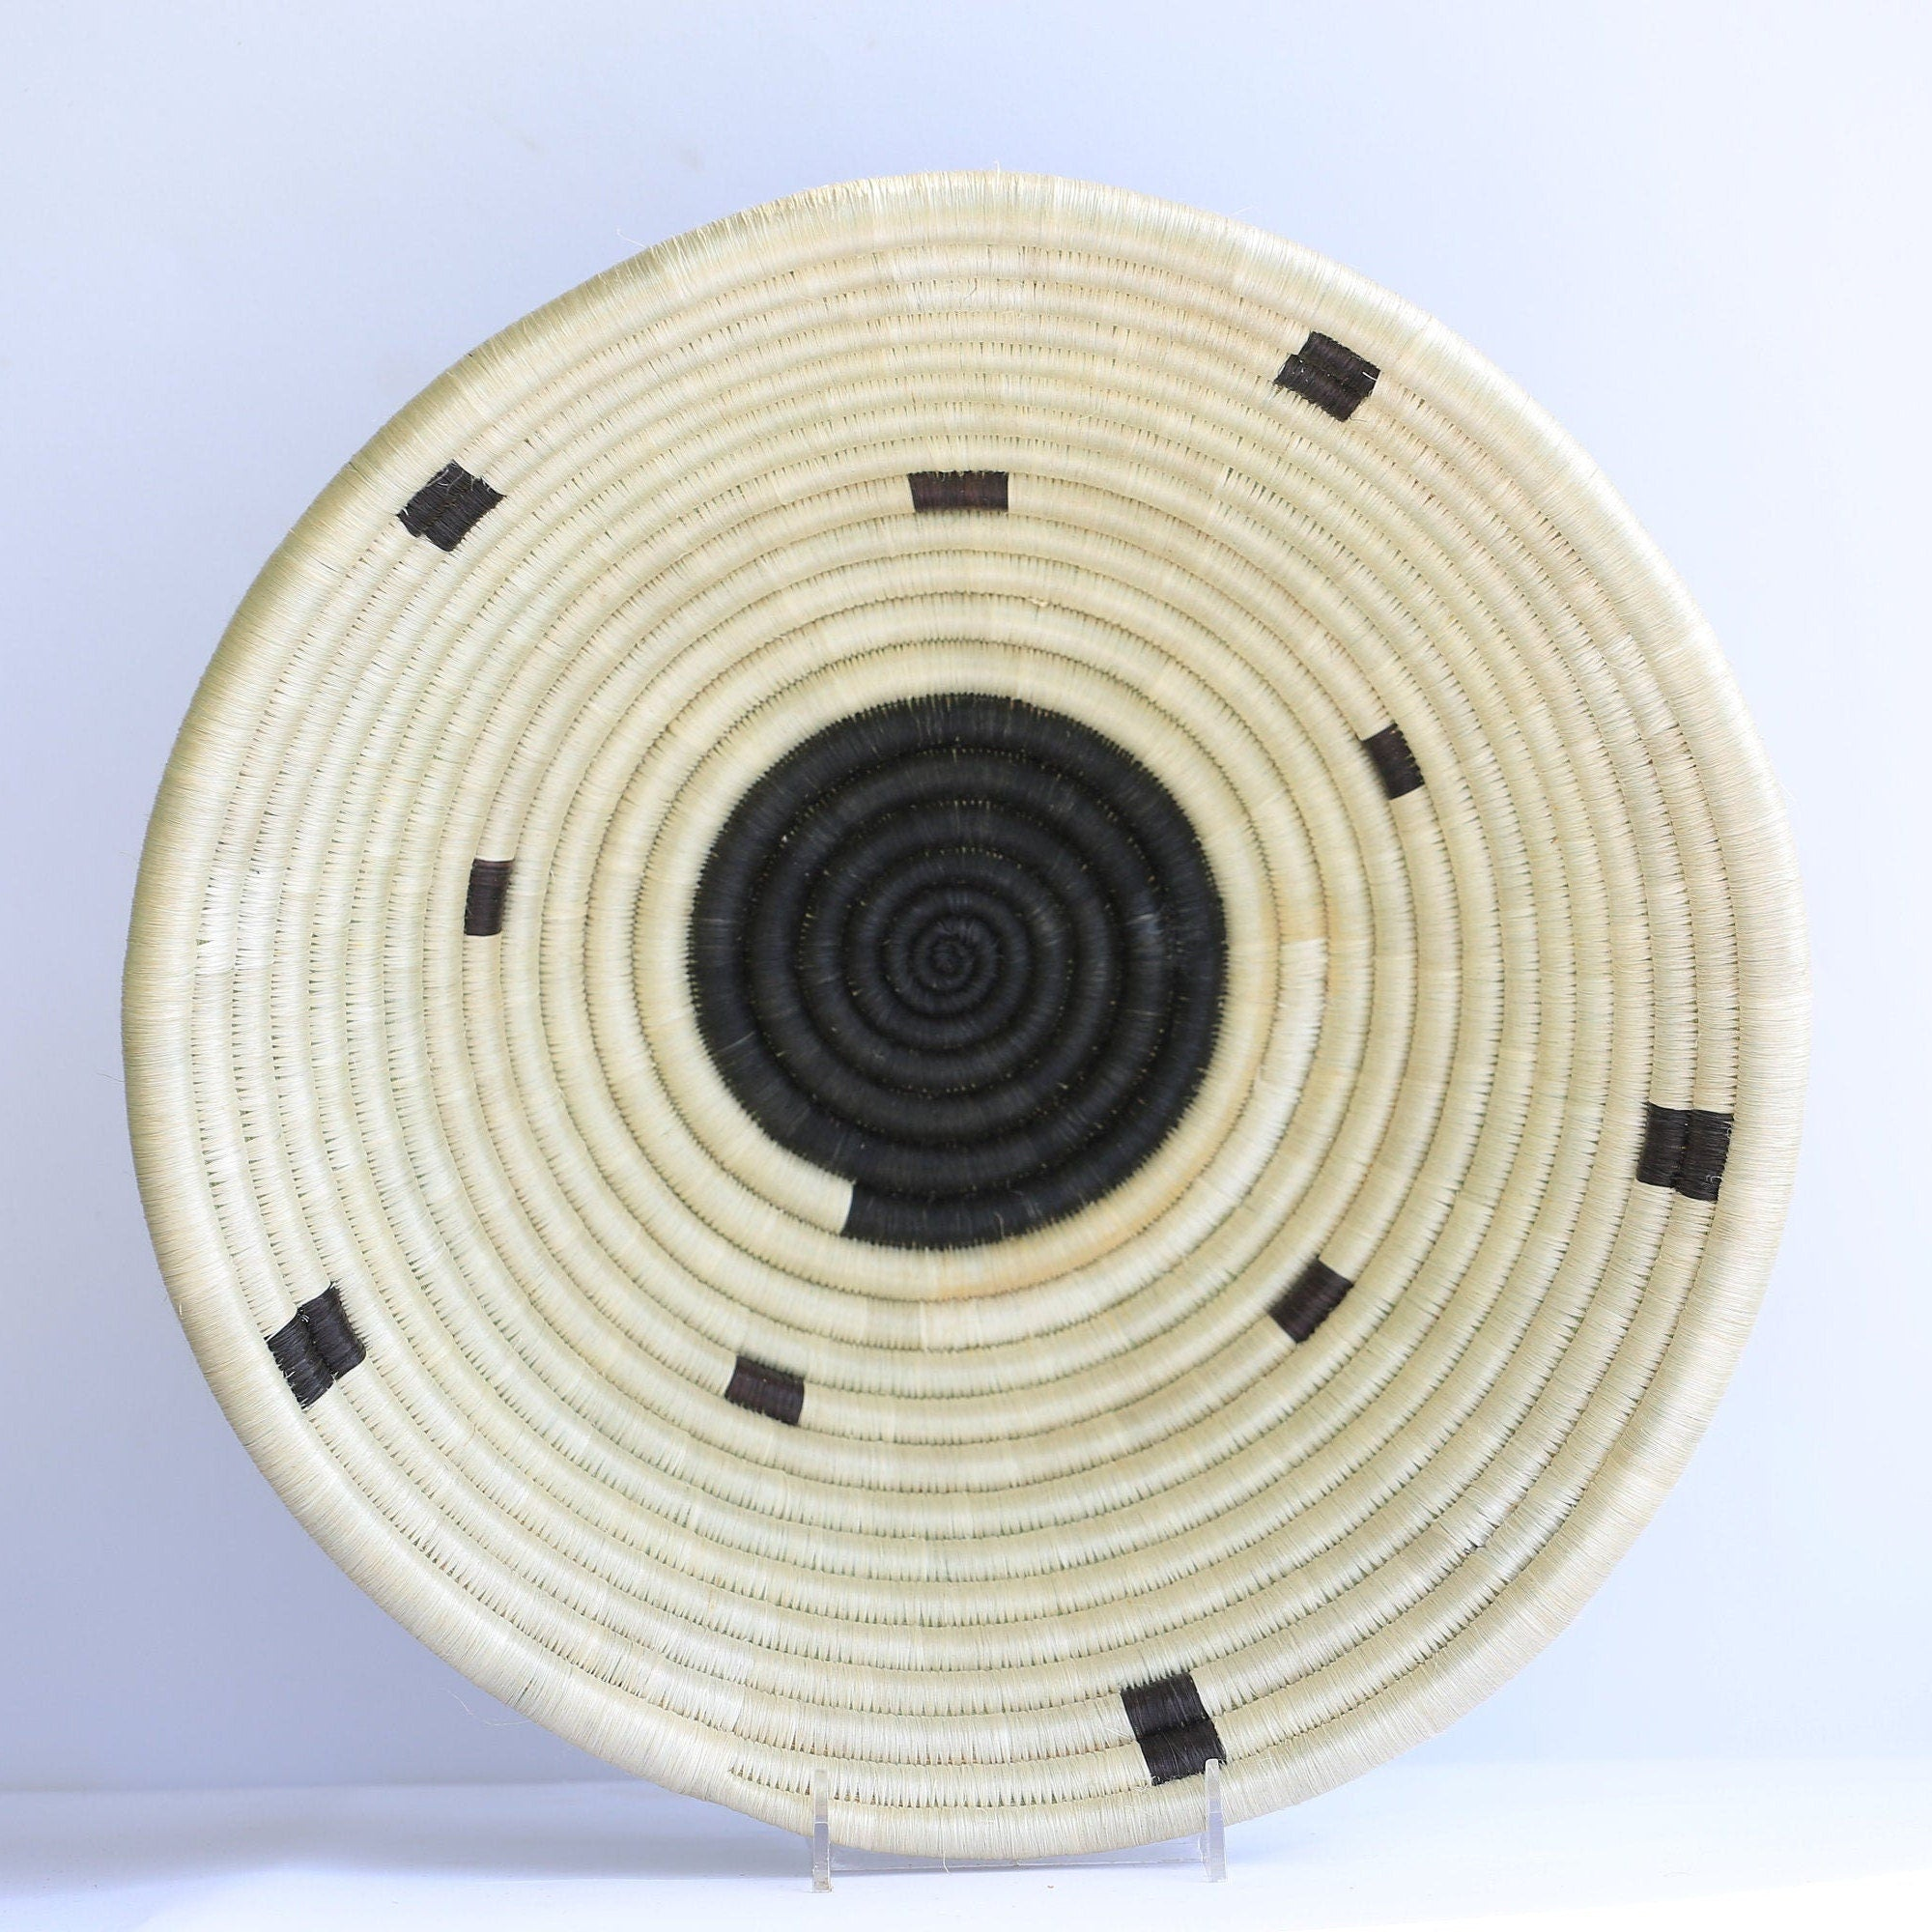 Teta African Wall Basket, Rwanda baskets, African Woven basket,  Brown, Black and White - African Baskets , African Basket , Rwanda Baskets , Wall baskets Woven Basket